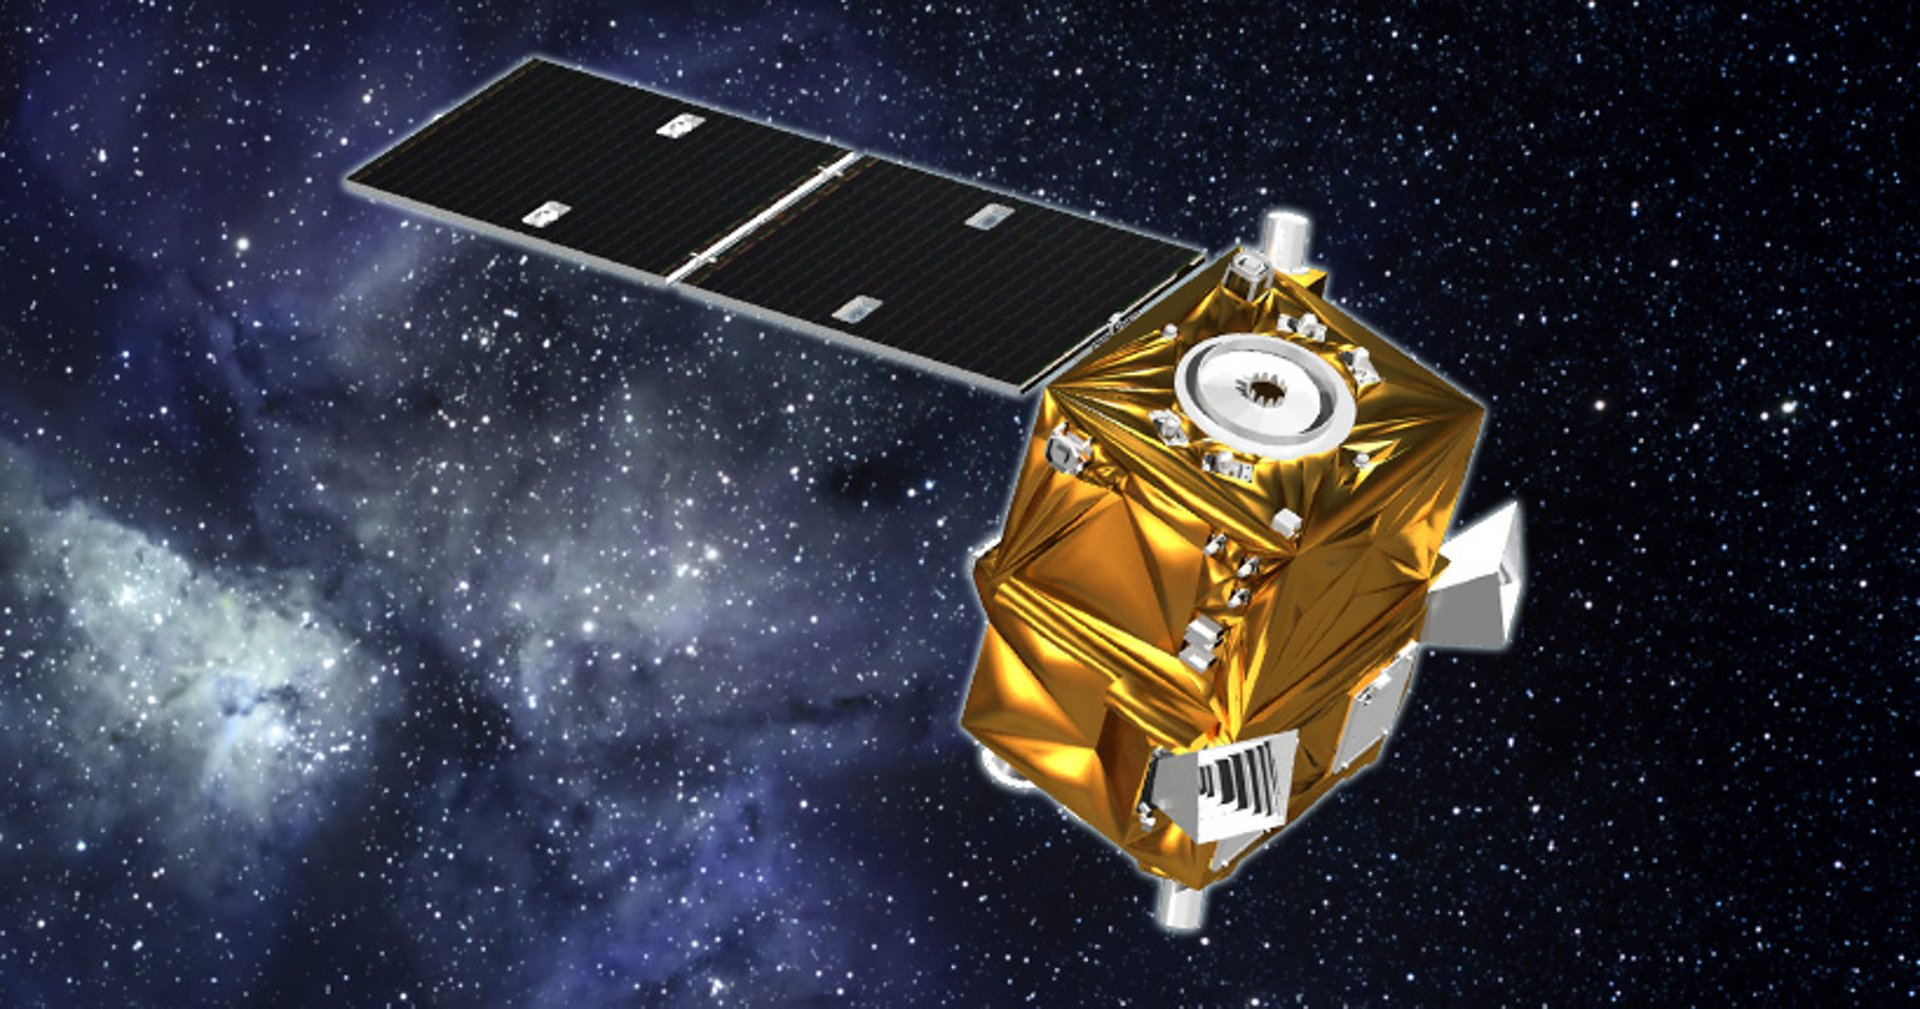 A representation of the Airbus-produced AstroBus-XS Earth observation satellite in orbit.